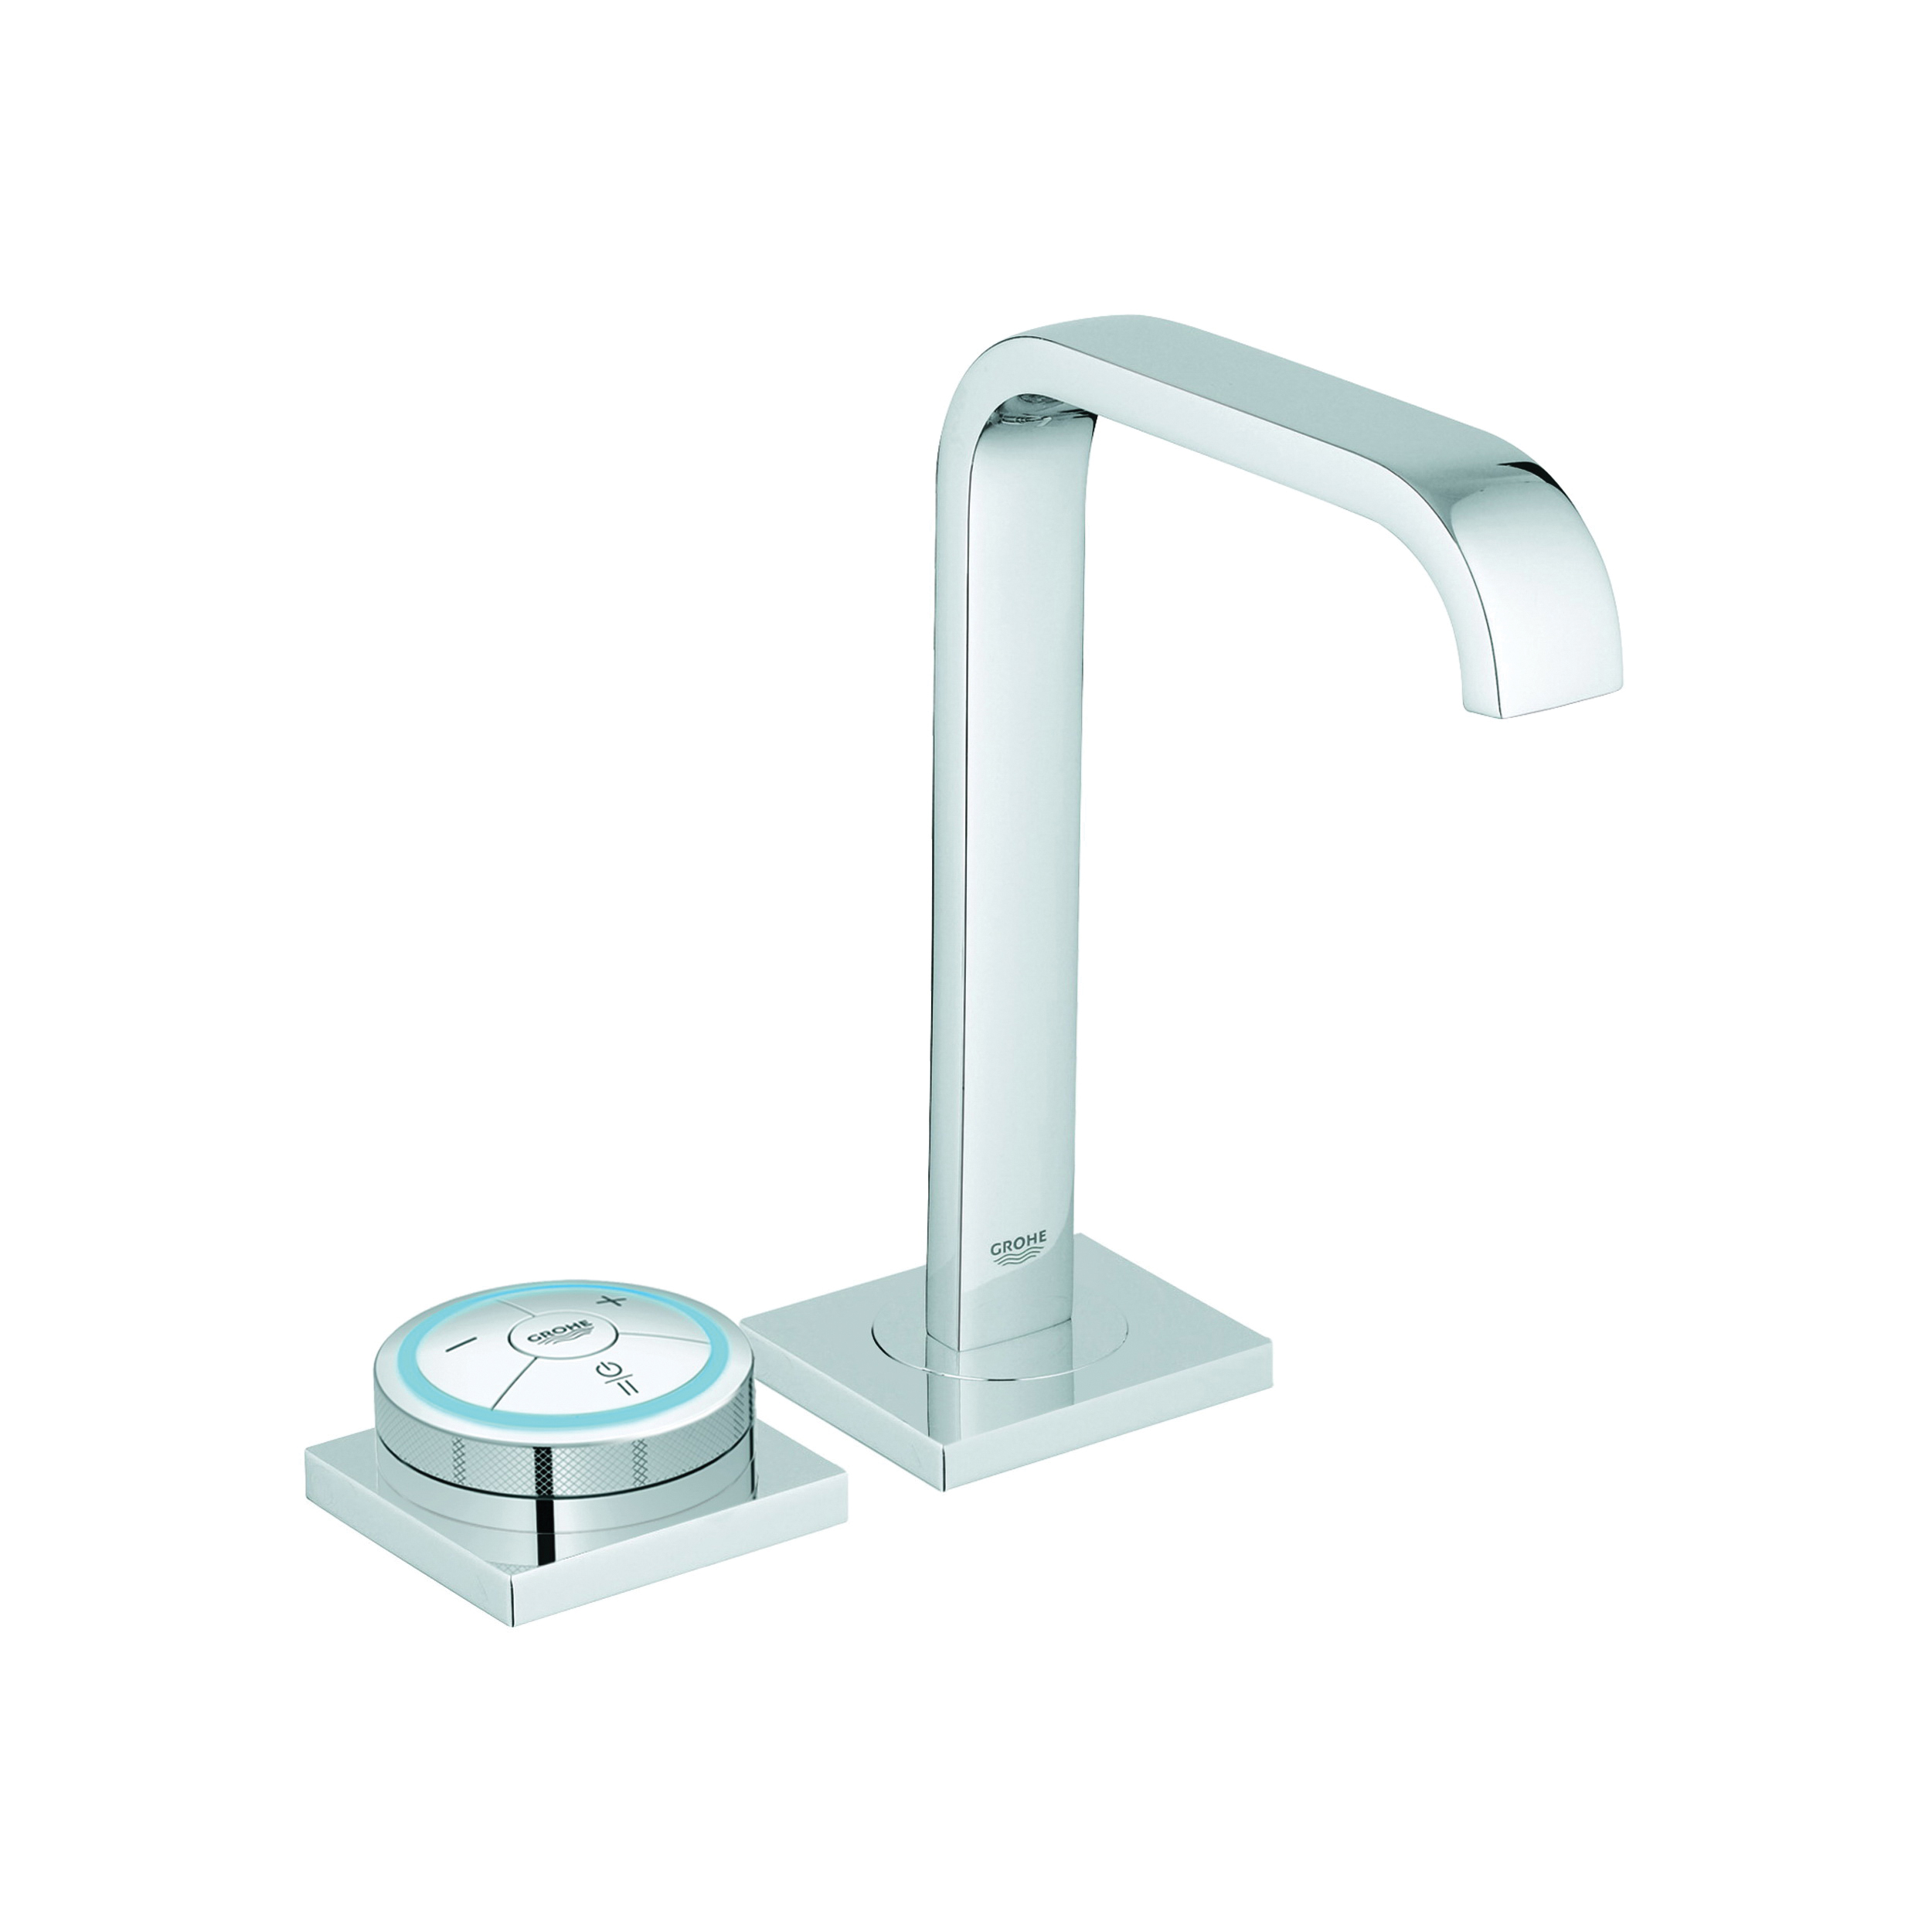 GROHE 36345000 Allure F-Digital Bathroom Basin Mixer, 1.5 gpm, 7-1/2 in H Spout, 2 Handles, Push-Open Drain, 1 Faucet Hole, StarLight® Chrome, Import